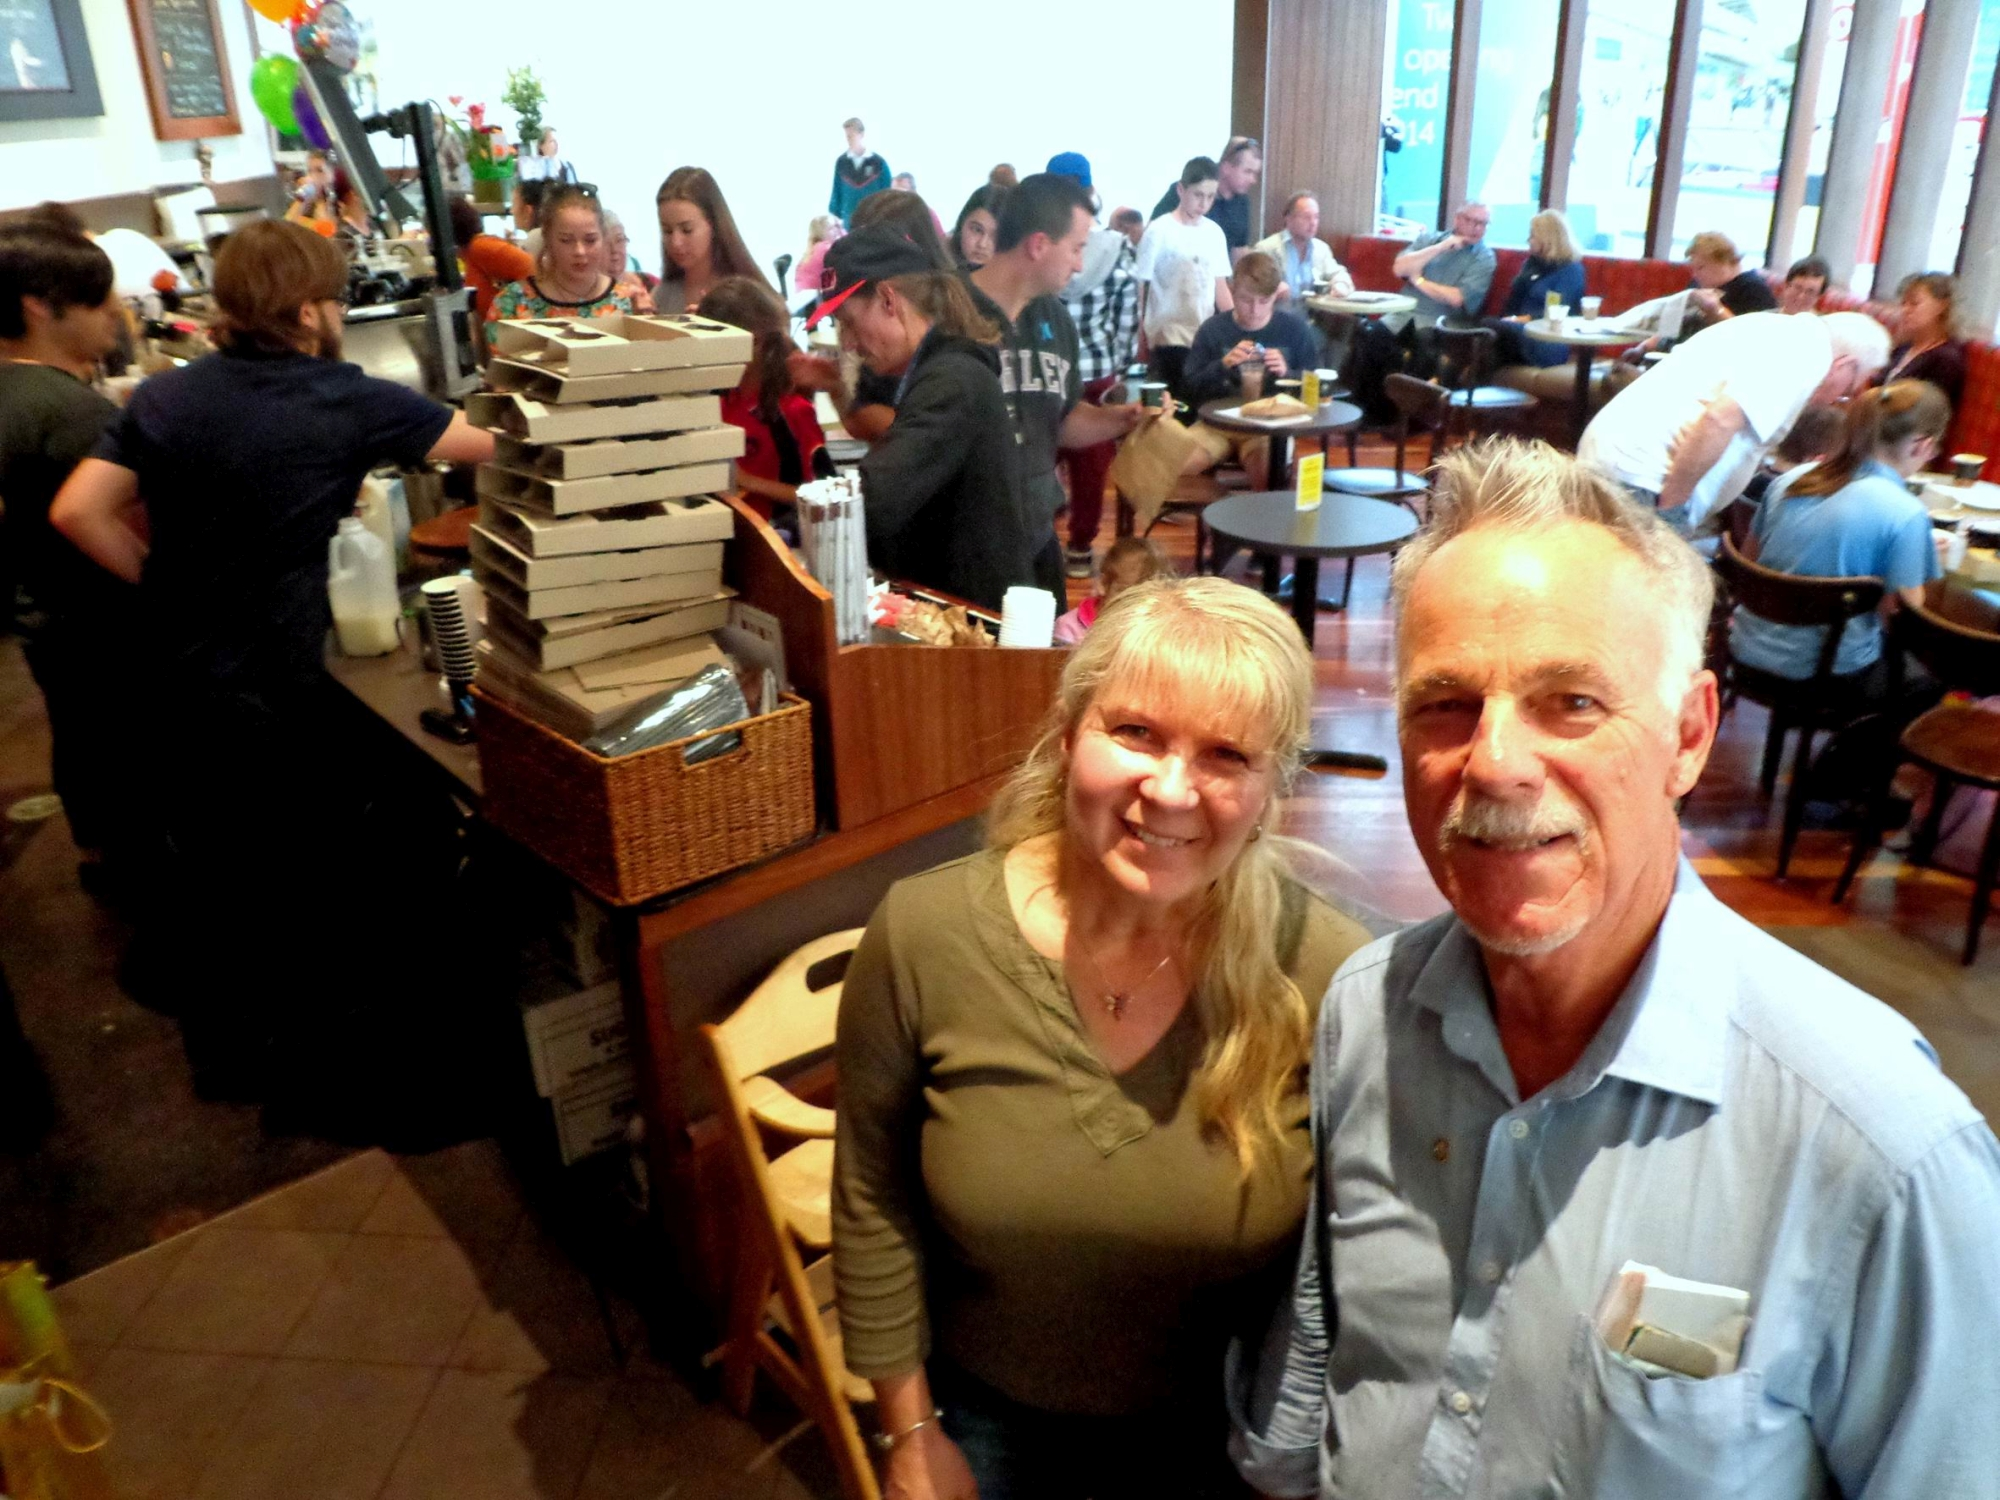 Julie Macfarlane with Brian Baily who served free coffees on the last day.